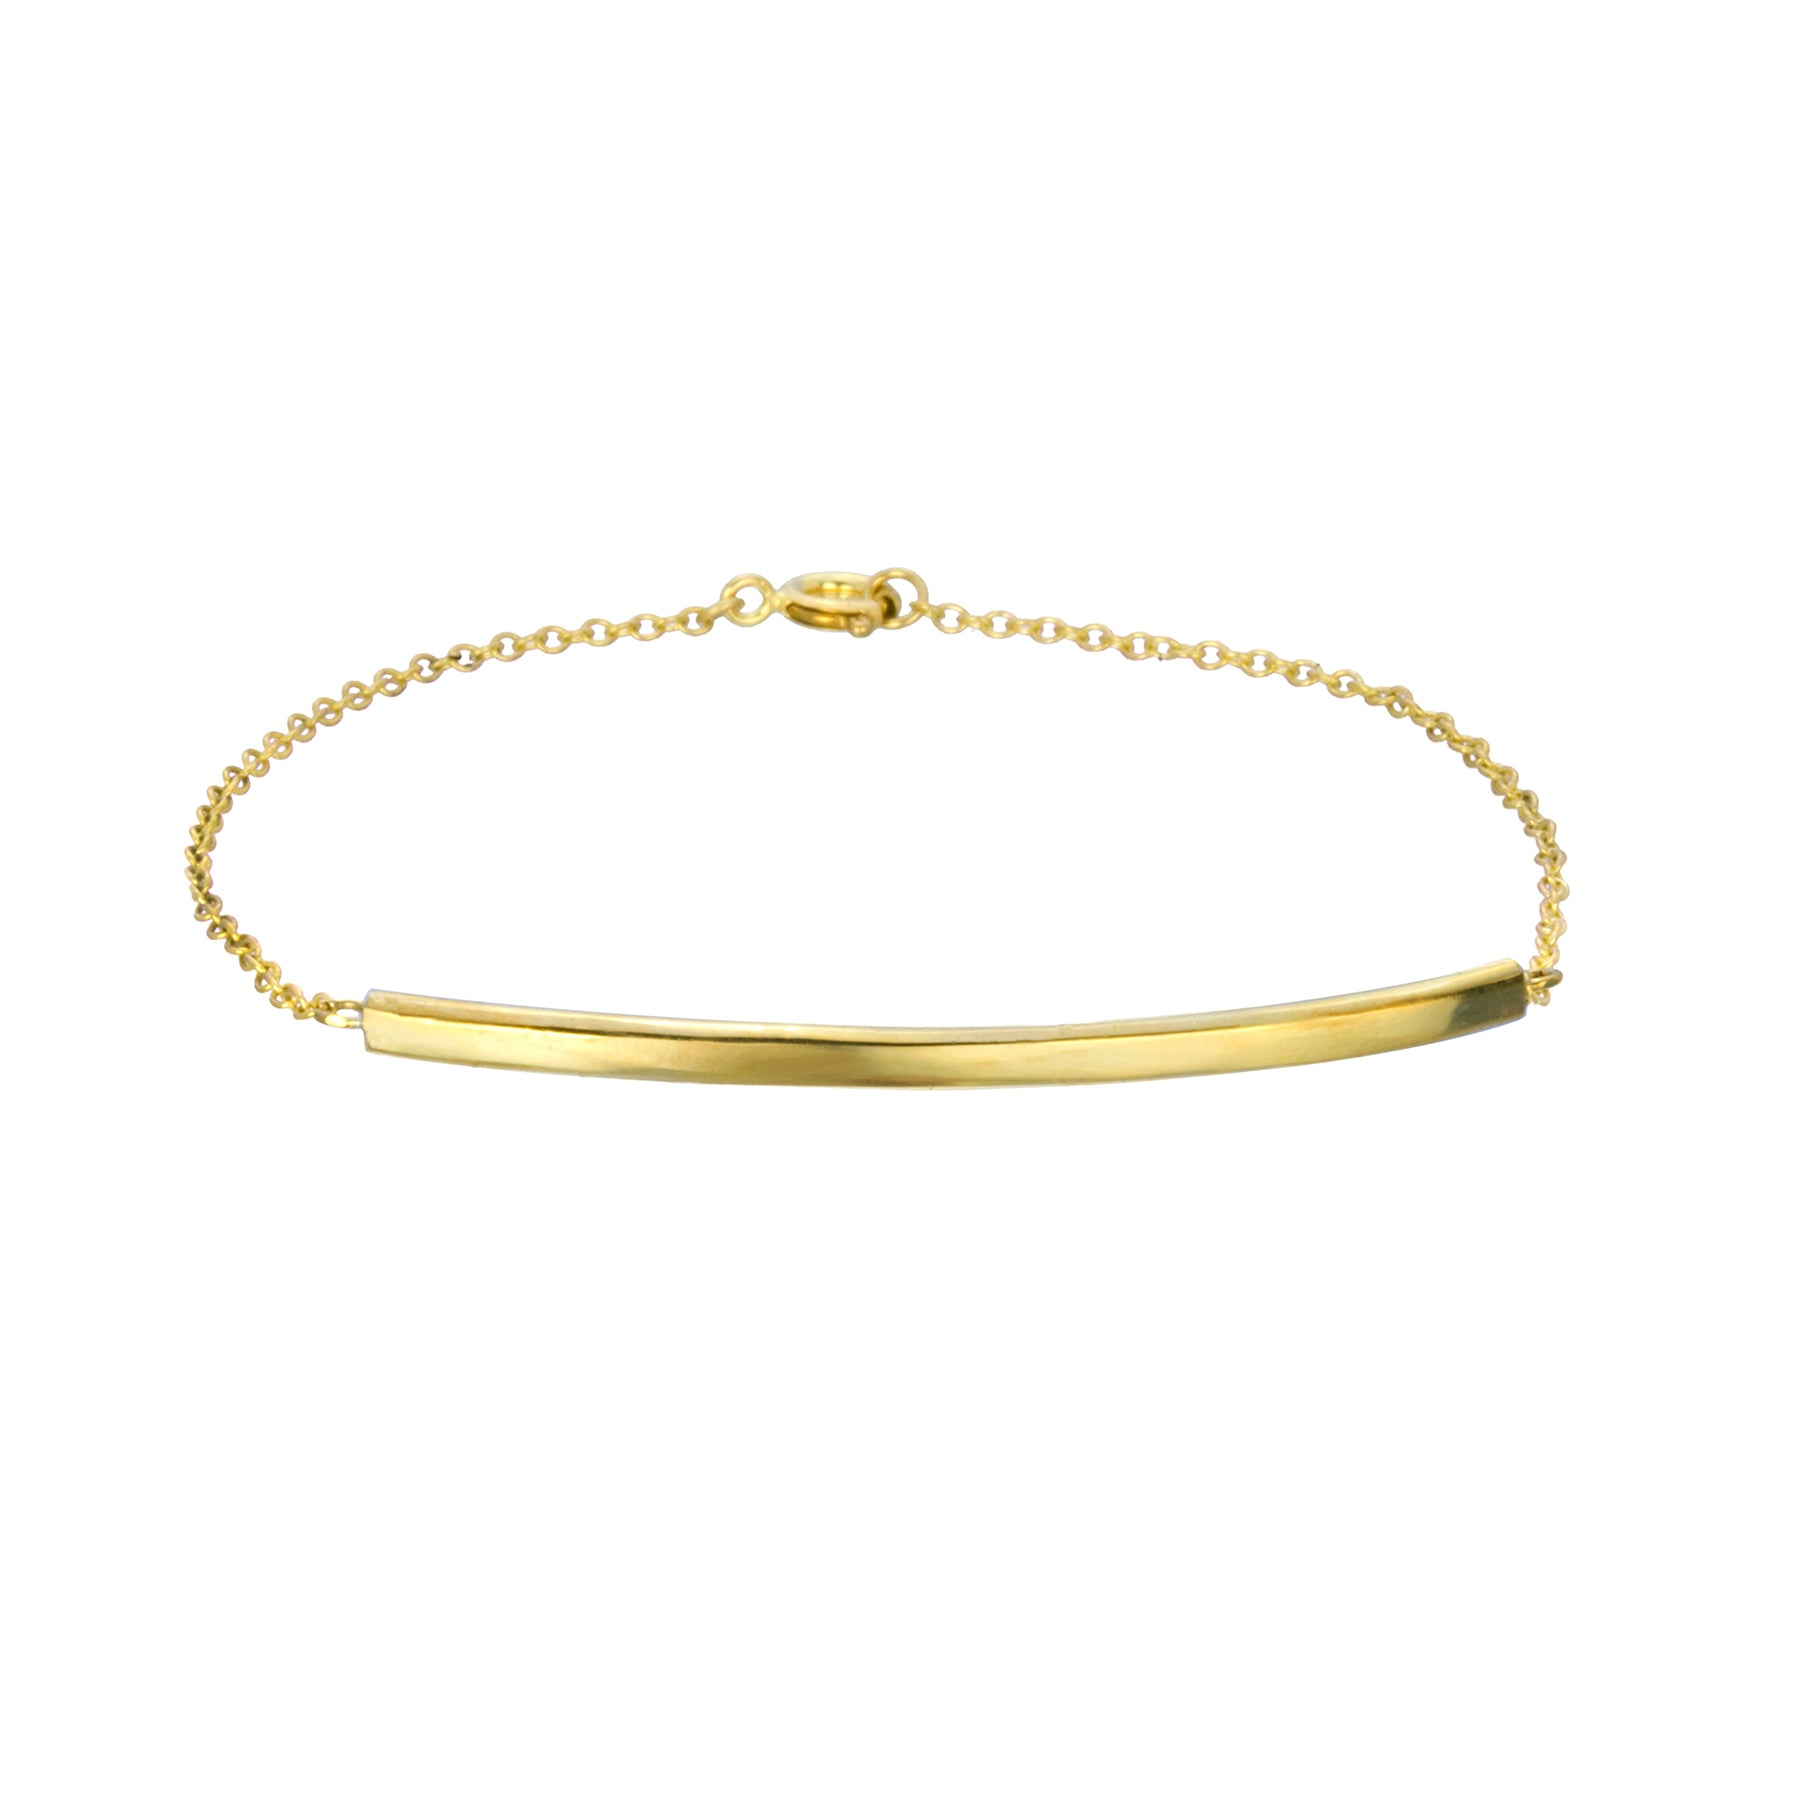 BAR AND CHAIN BRACELET IN YELLOW GOLD